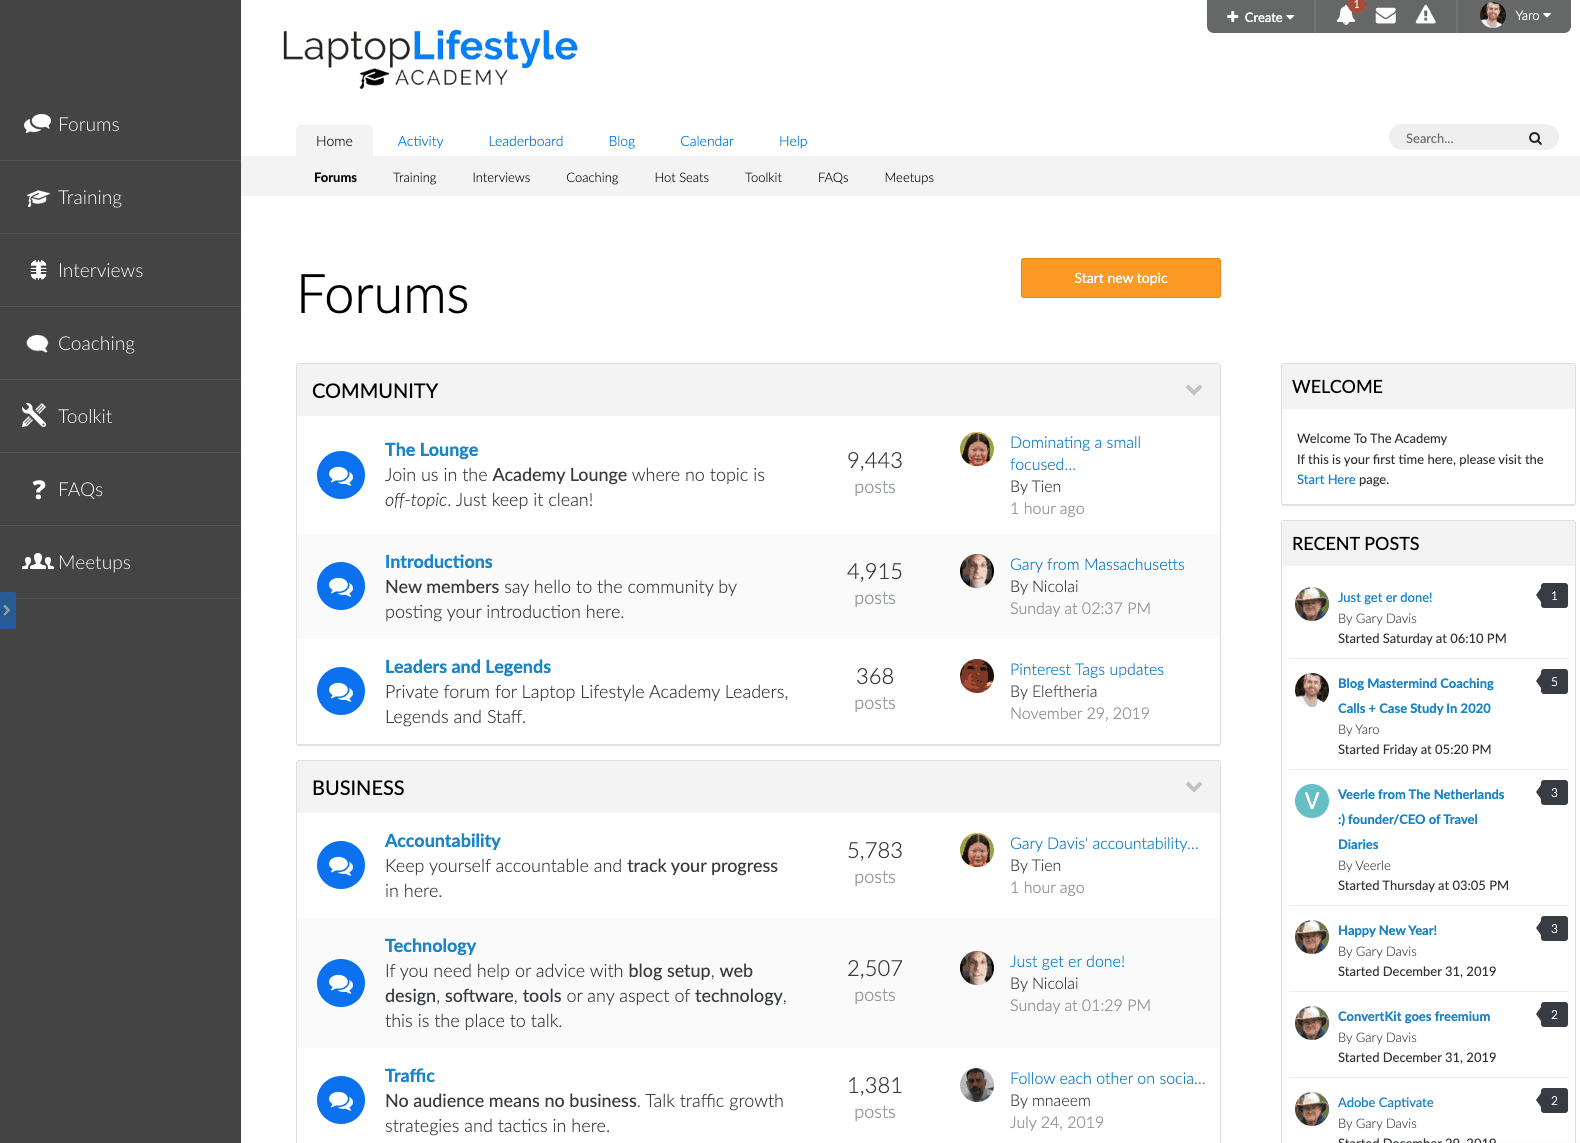 The Laptop Lifestyle Academy is the community I currently offer my members.